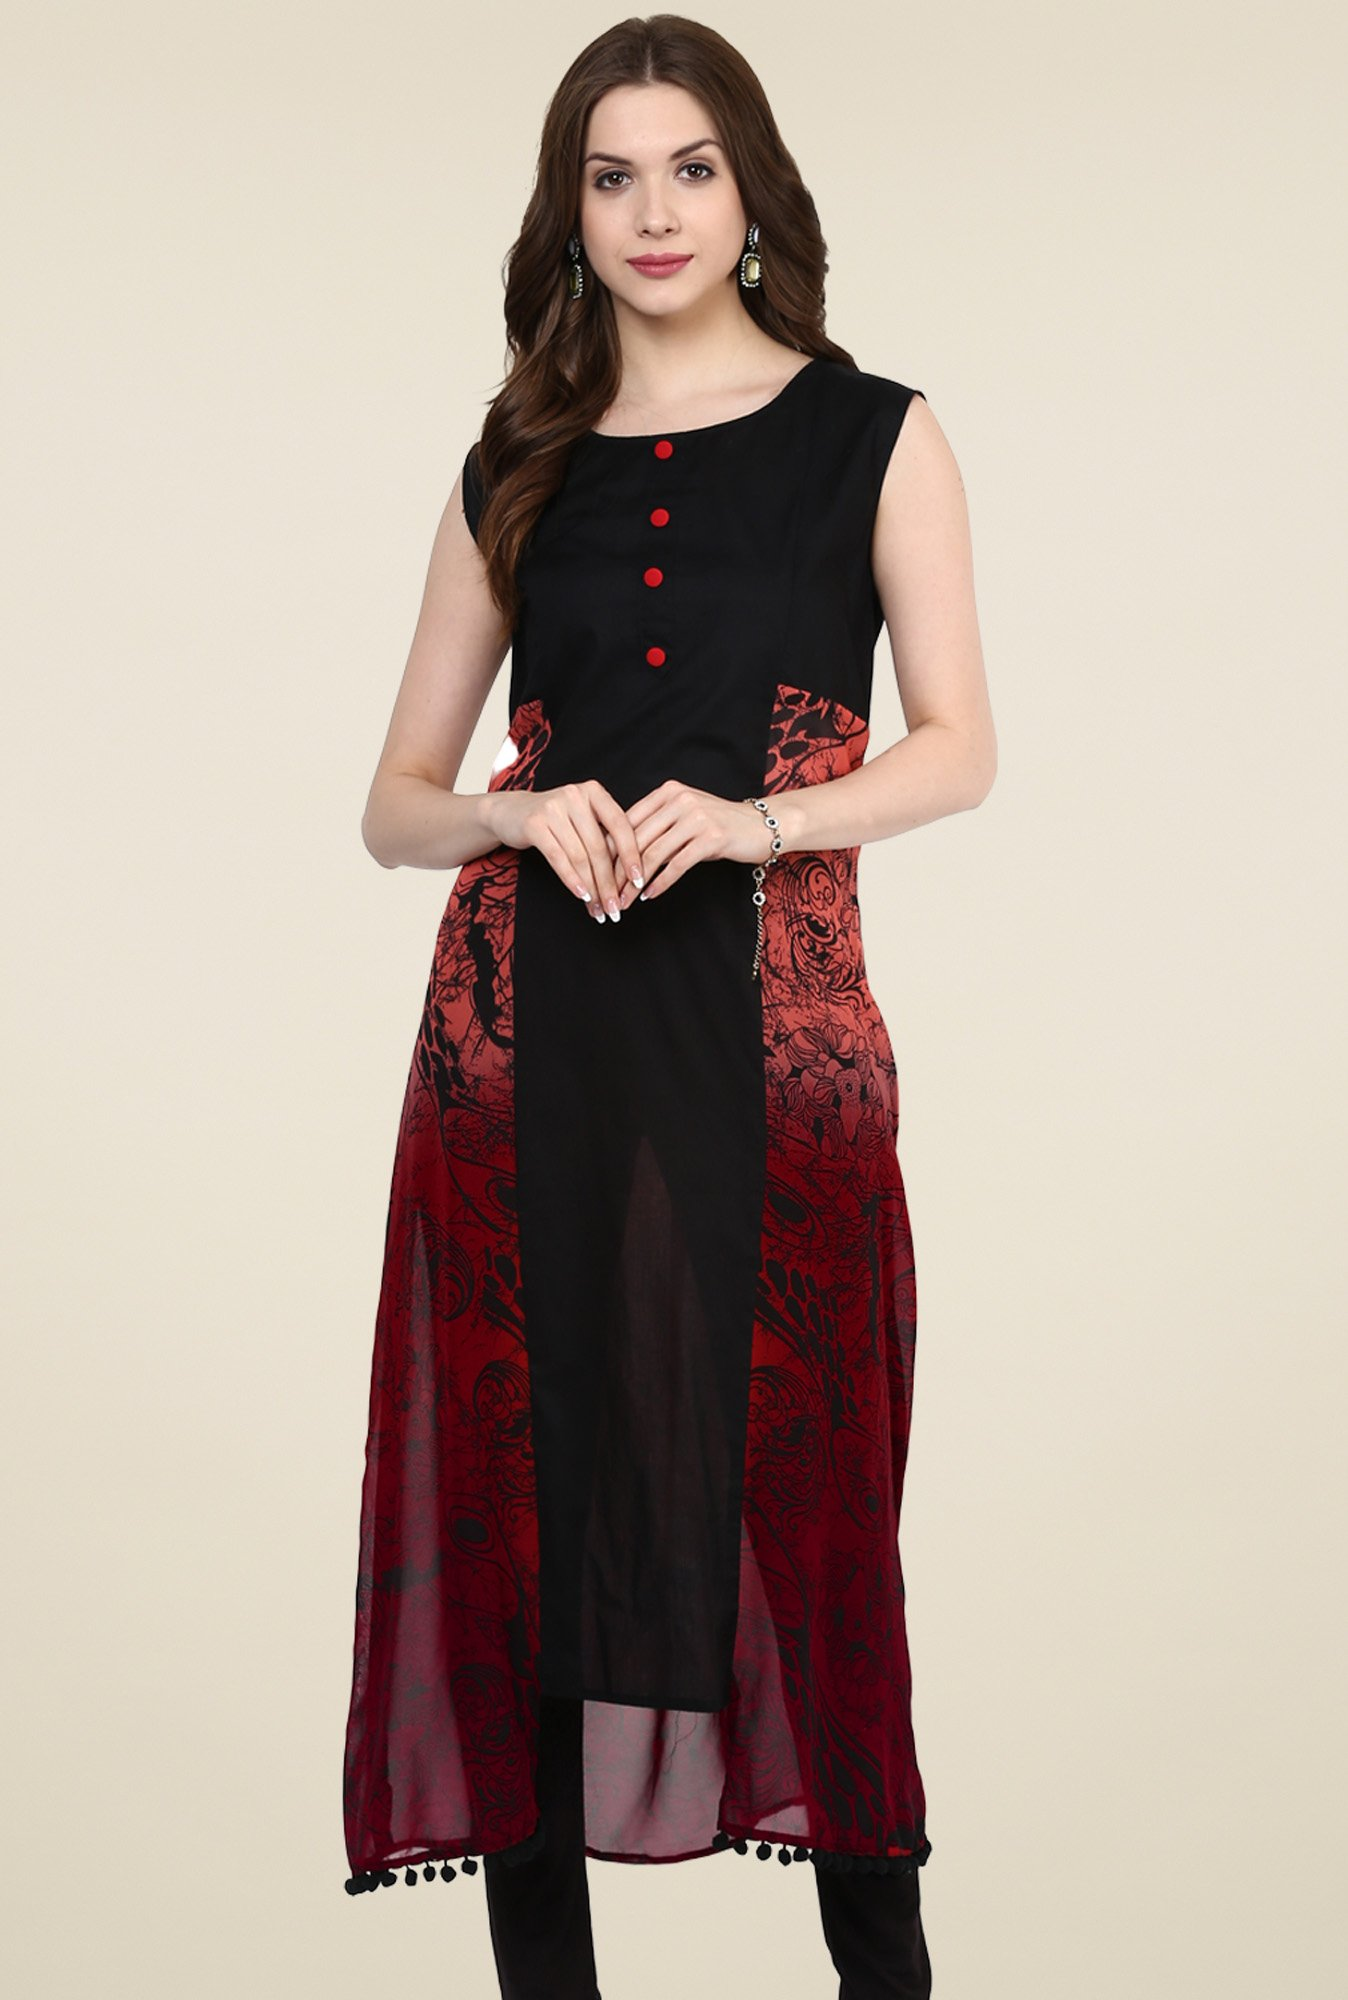 Pannkh Black Cotton Sleeveless Regular Fit Kurti